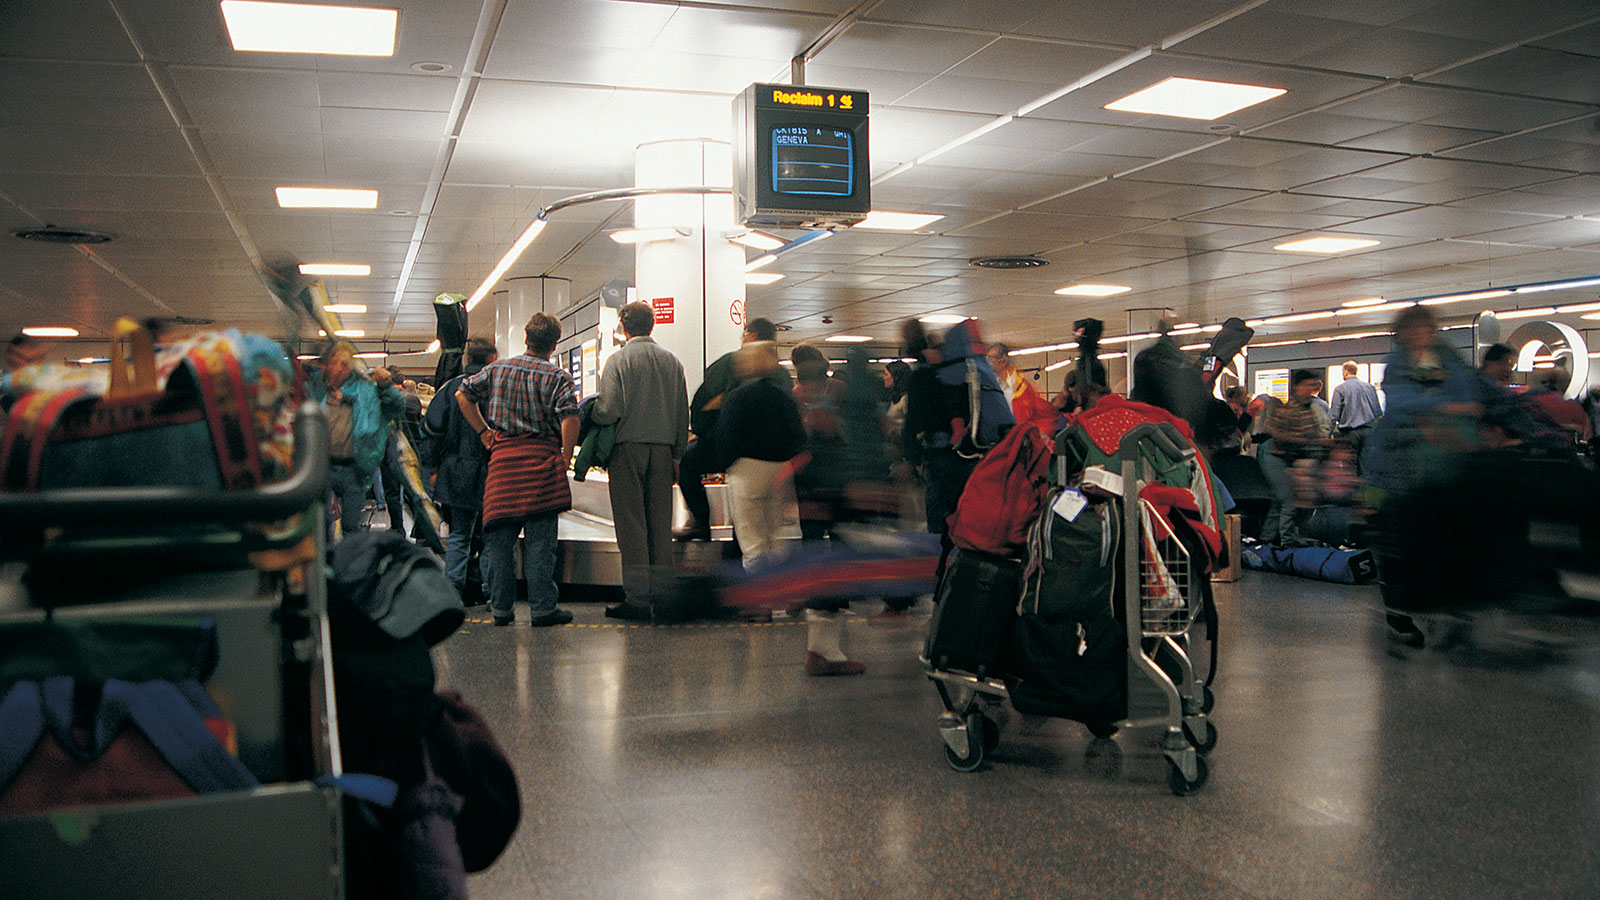 Image of travelers in line at an airport